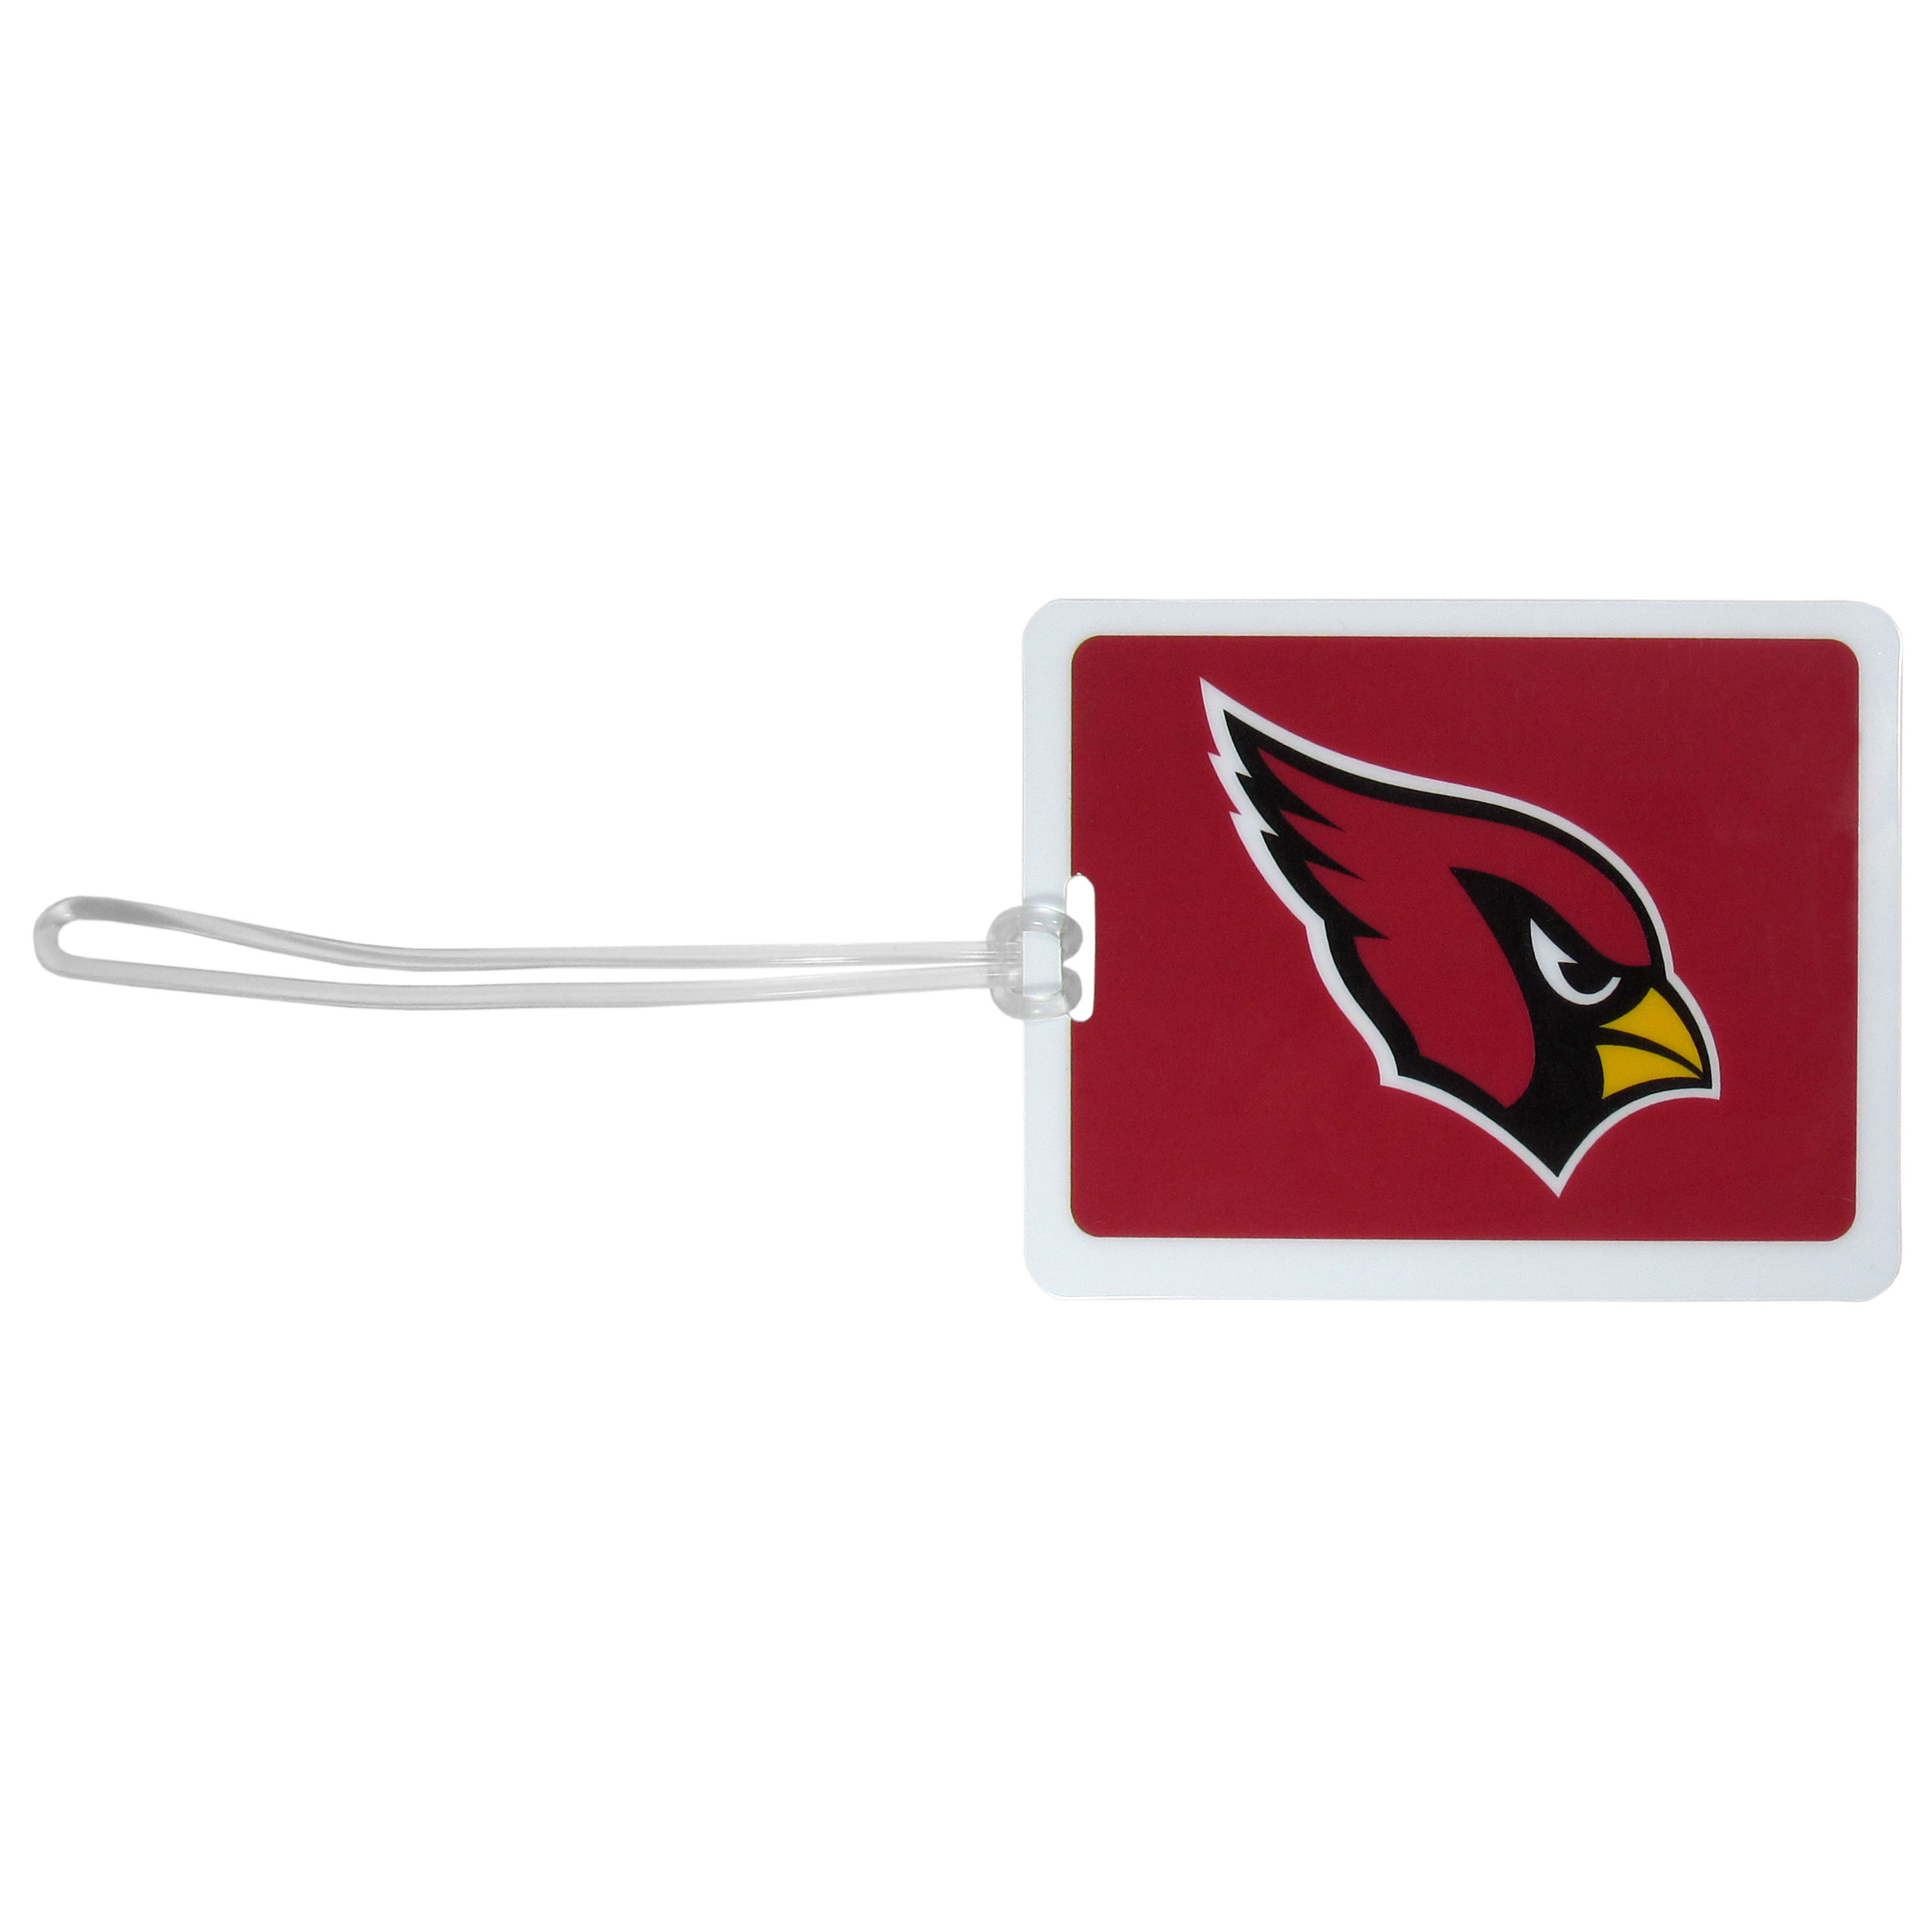 Arizona Cardinals Vinyl Luggage Tag - Tired of trying to spot your suitcase or bag in a sea of luggage? Try our large and colorful Arizona Cardinals luggage tag set. The tag is 4x3 inches and has a 5 inch cord to attach it easily to your bags, backpacks or luggage. The front of the tag features the team logo in a bright, team colored background and you can write you name, address and phone number on the back of the tag.